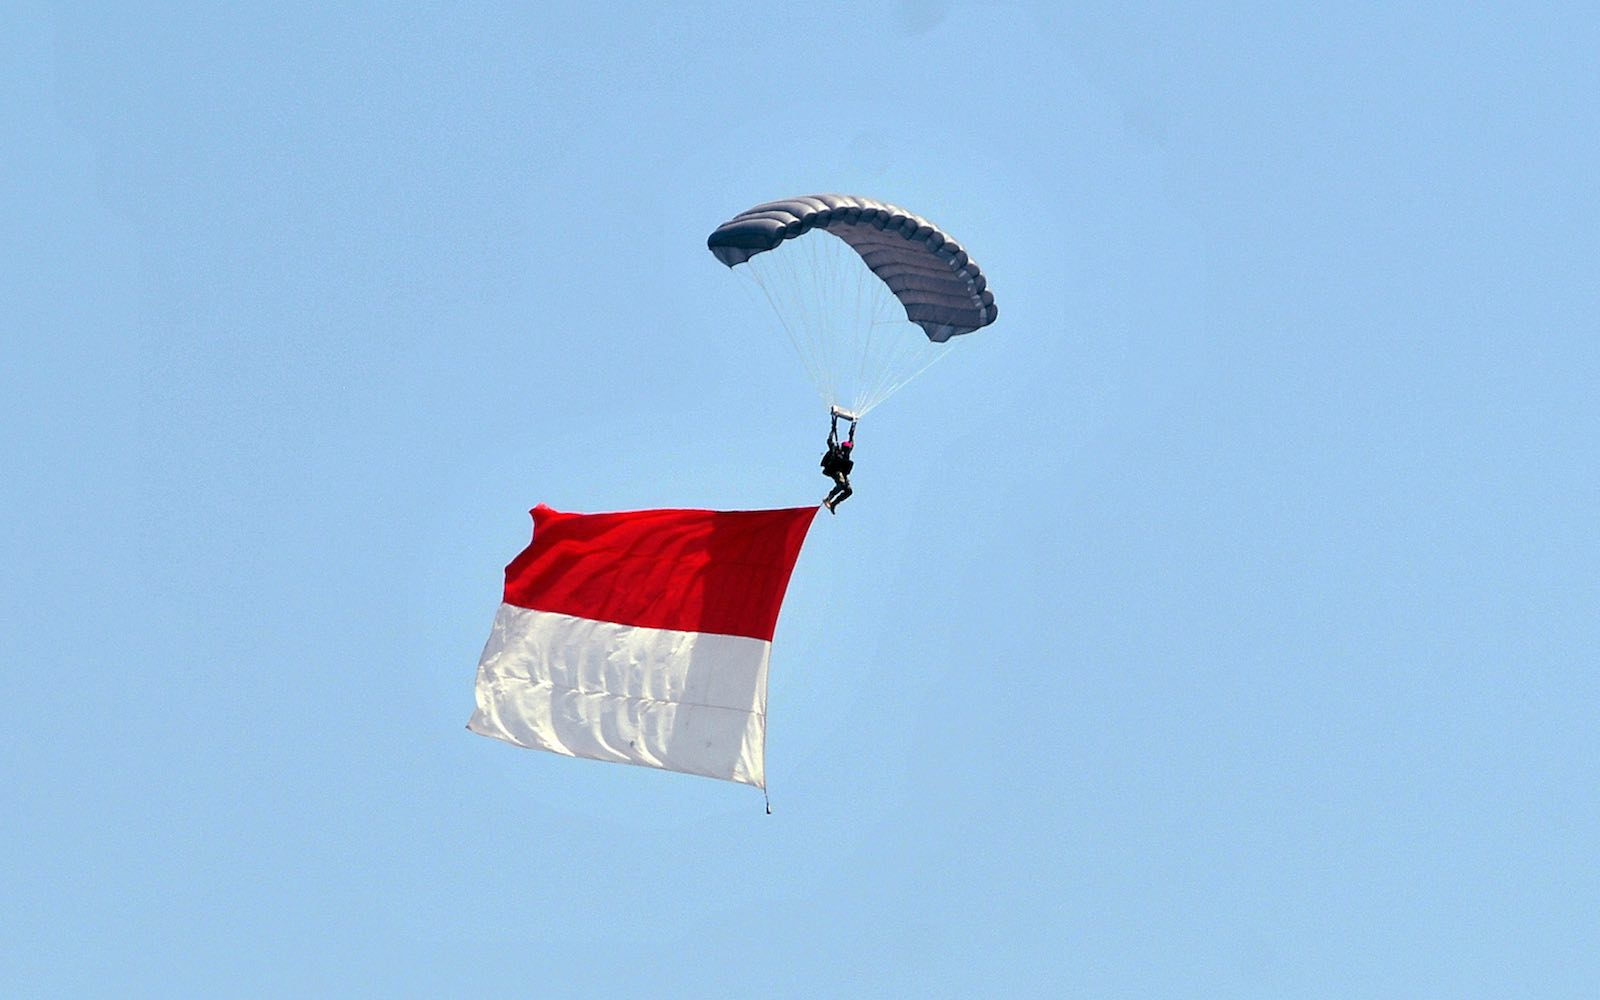 TNI Air Force demonstration at the 74th anniversary celebration of the Indonesian National Armed Forces, Jakarta, 5 October 2019 (Dasril Roszandi/NurPhoto via Getty Images)